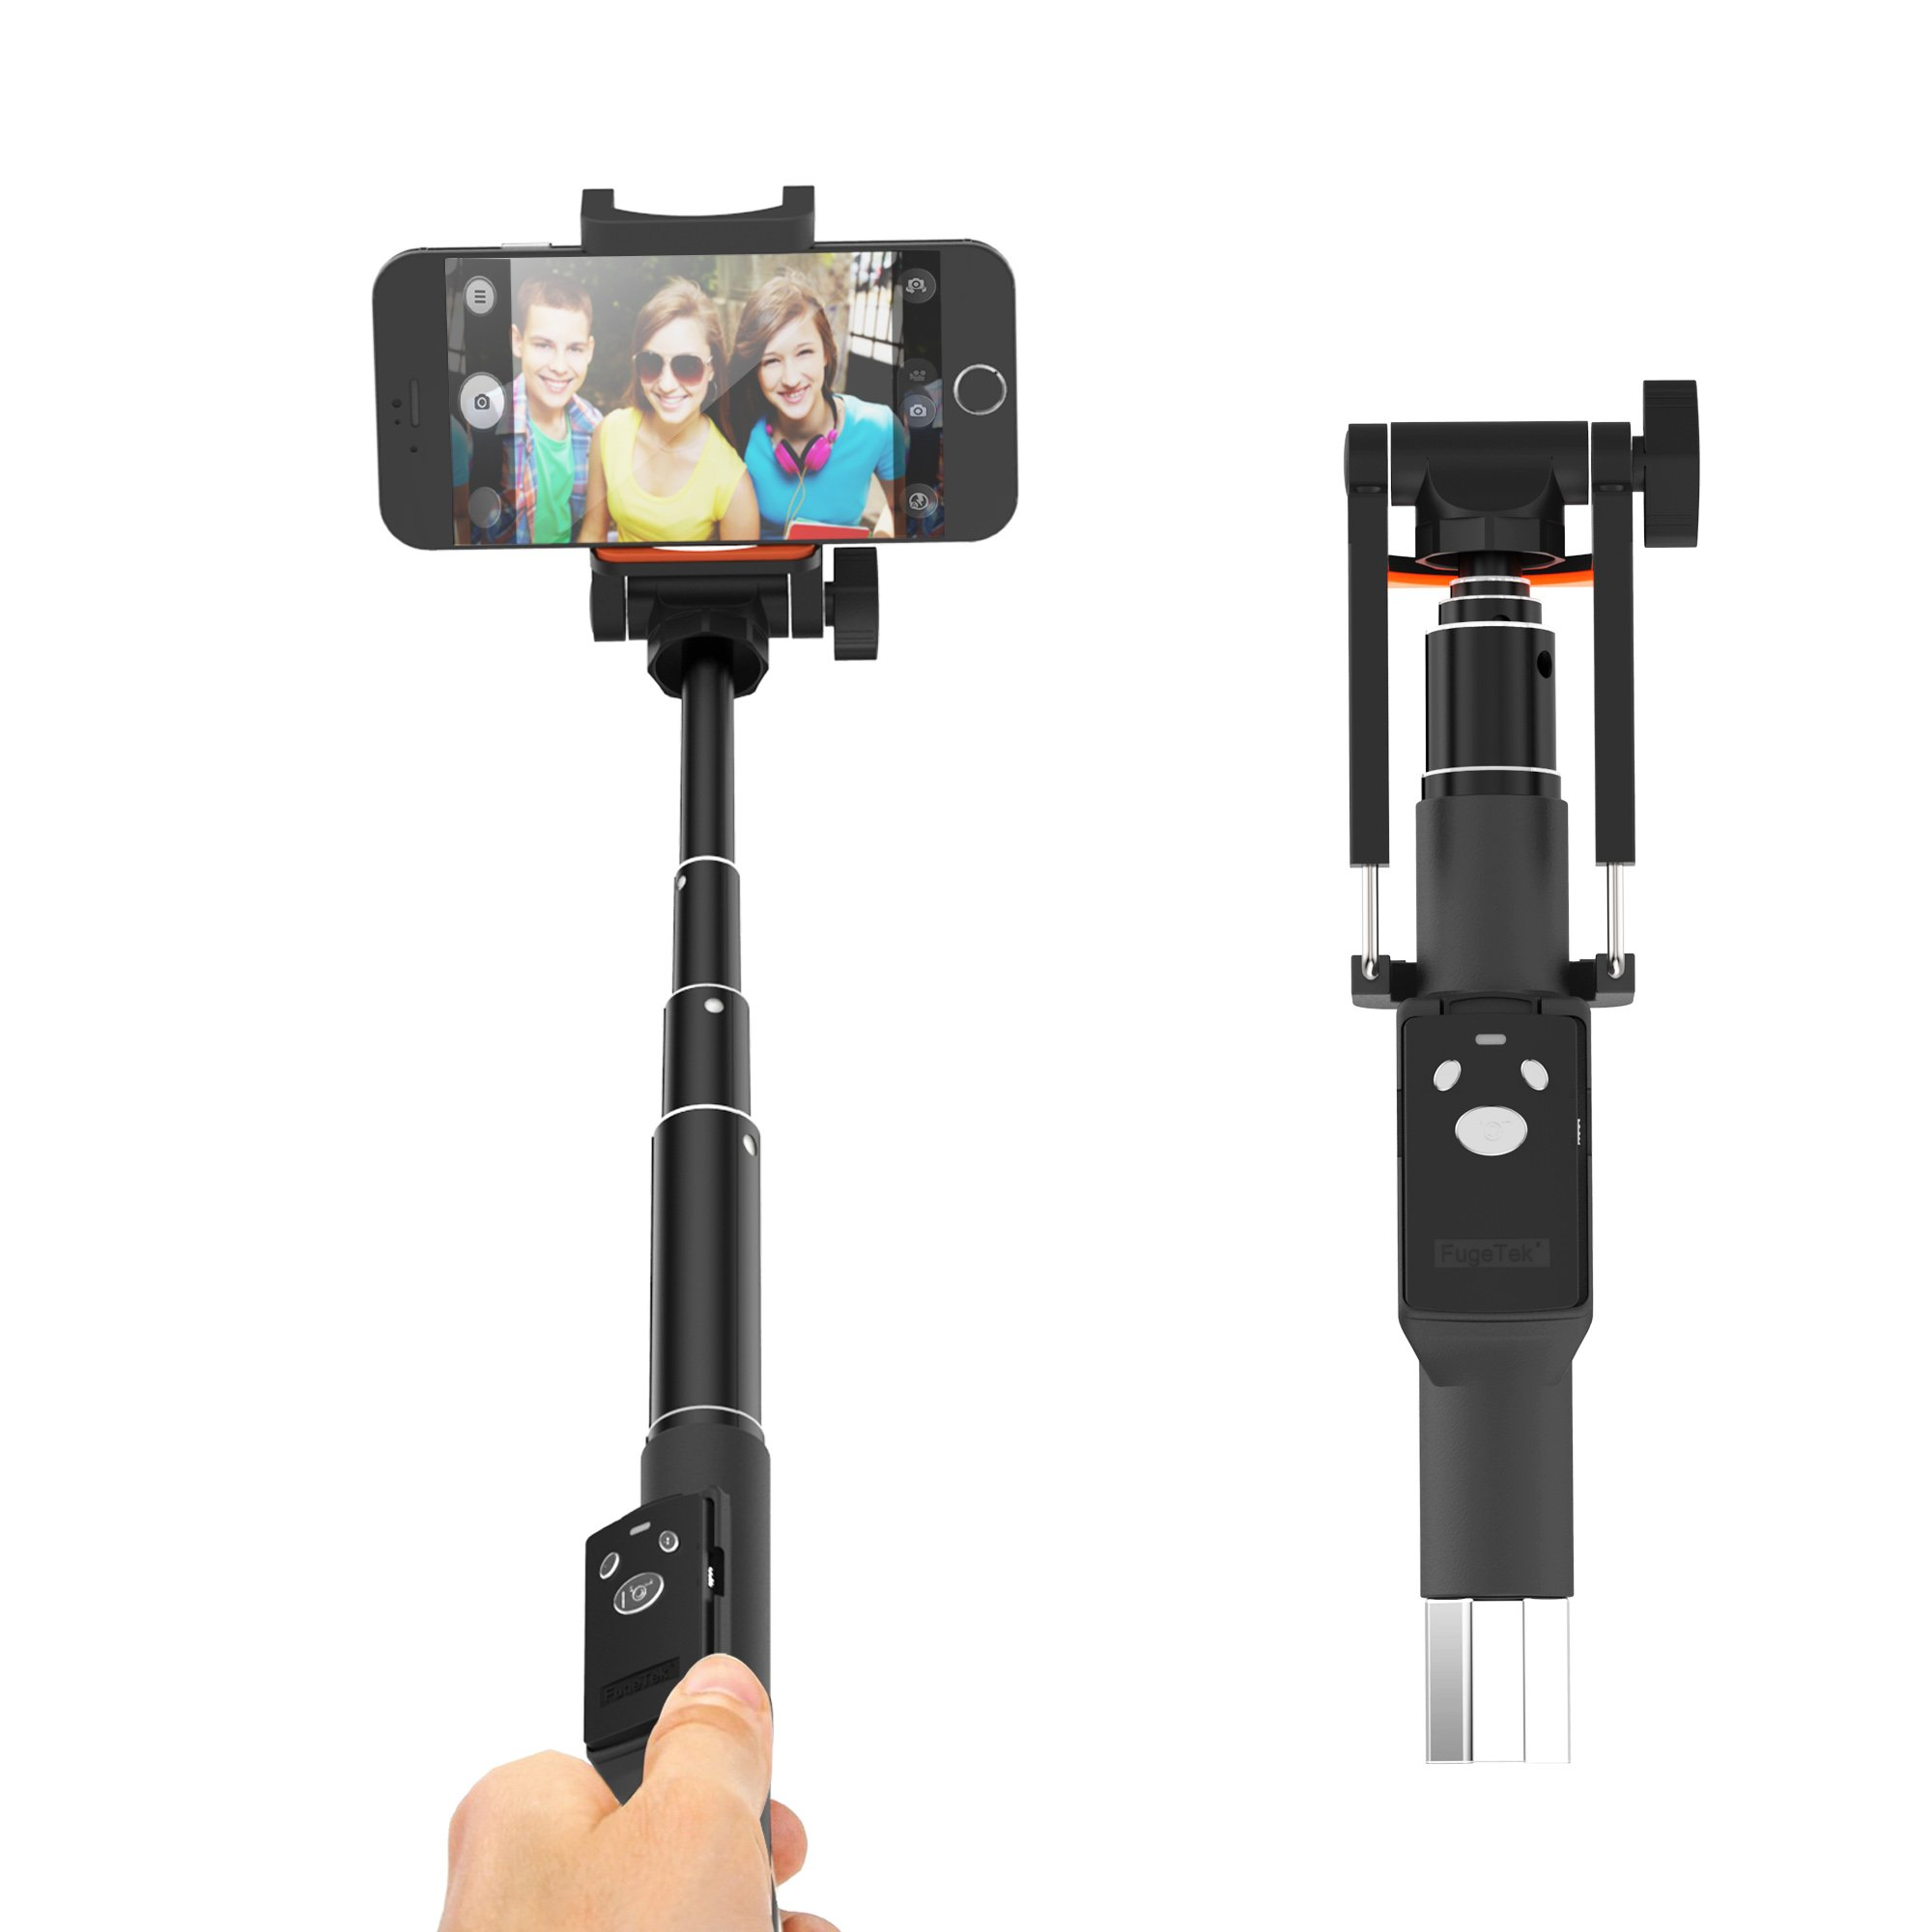 Professional Selfie Stick 32'', Portable, Fugetek, Removable Rechargeable Bluetooth Remote, Easy iPhone & Android Pairing, Lightweight Twist & Lock Aluminum, US Warranty and Support, Black